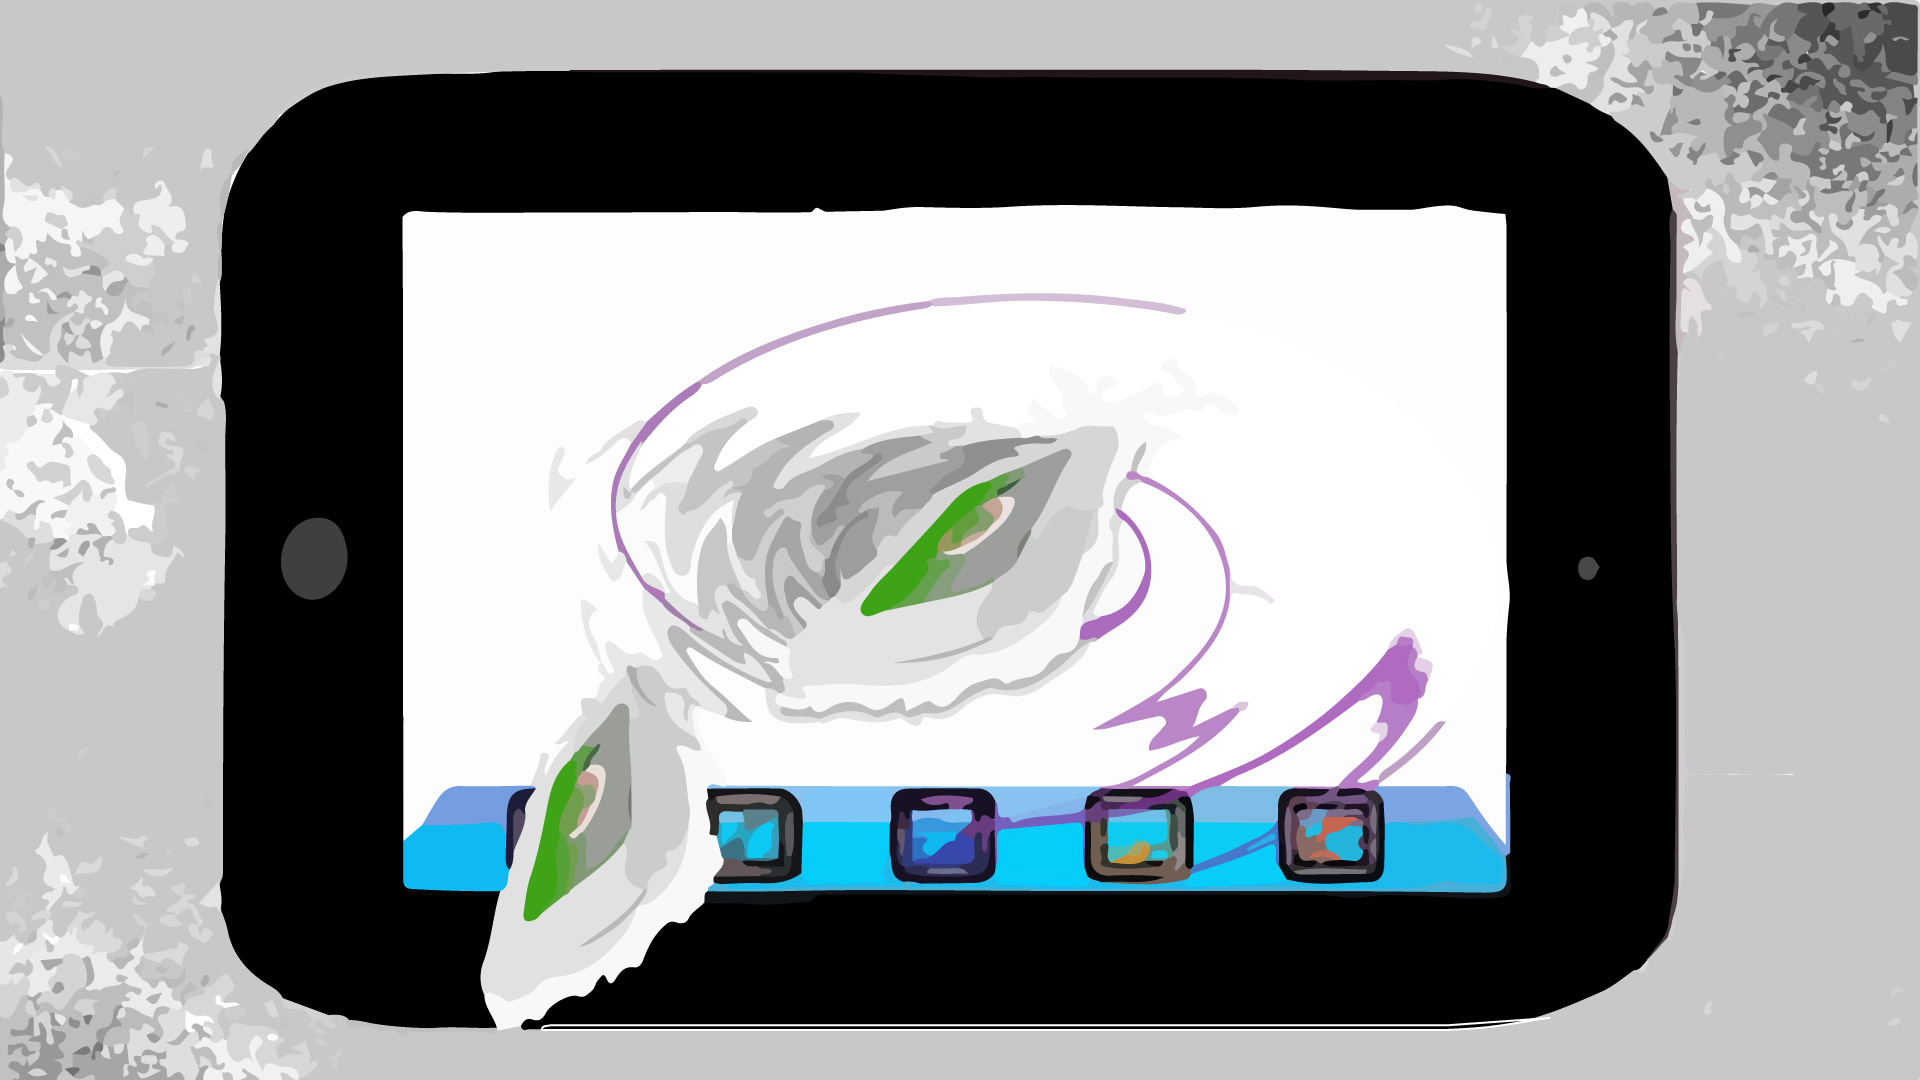 Apple iPad design of an iPad I created using an iPad and later Adobe Illustrator